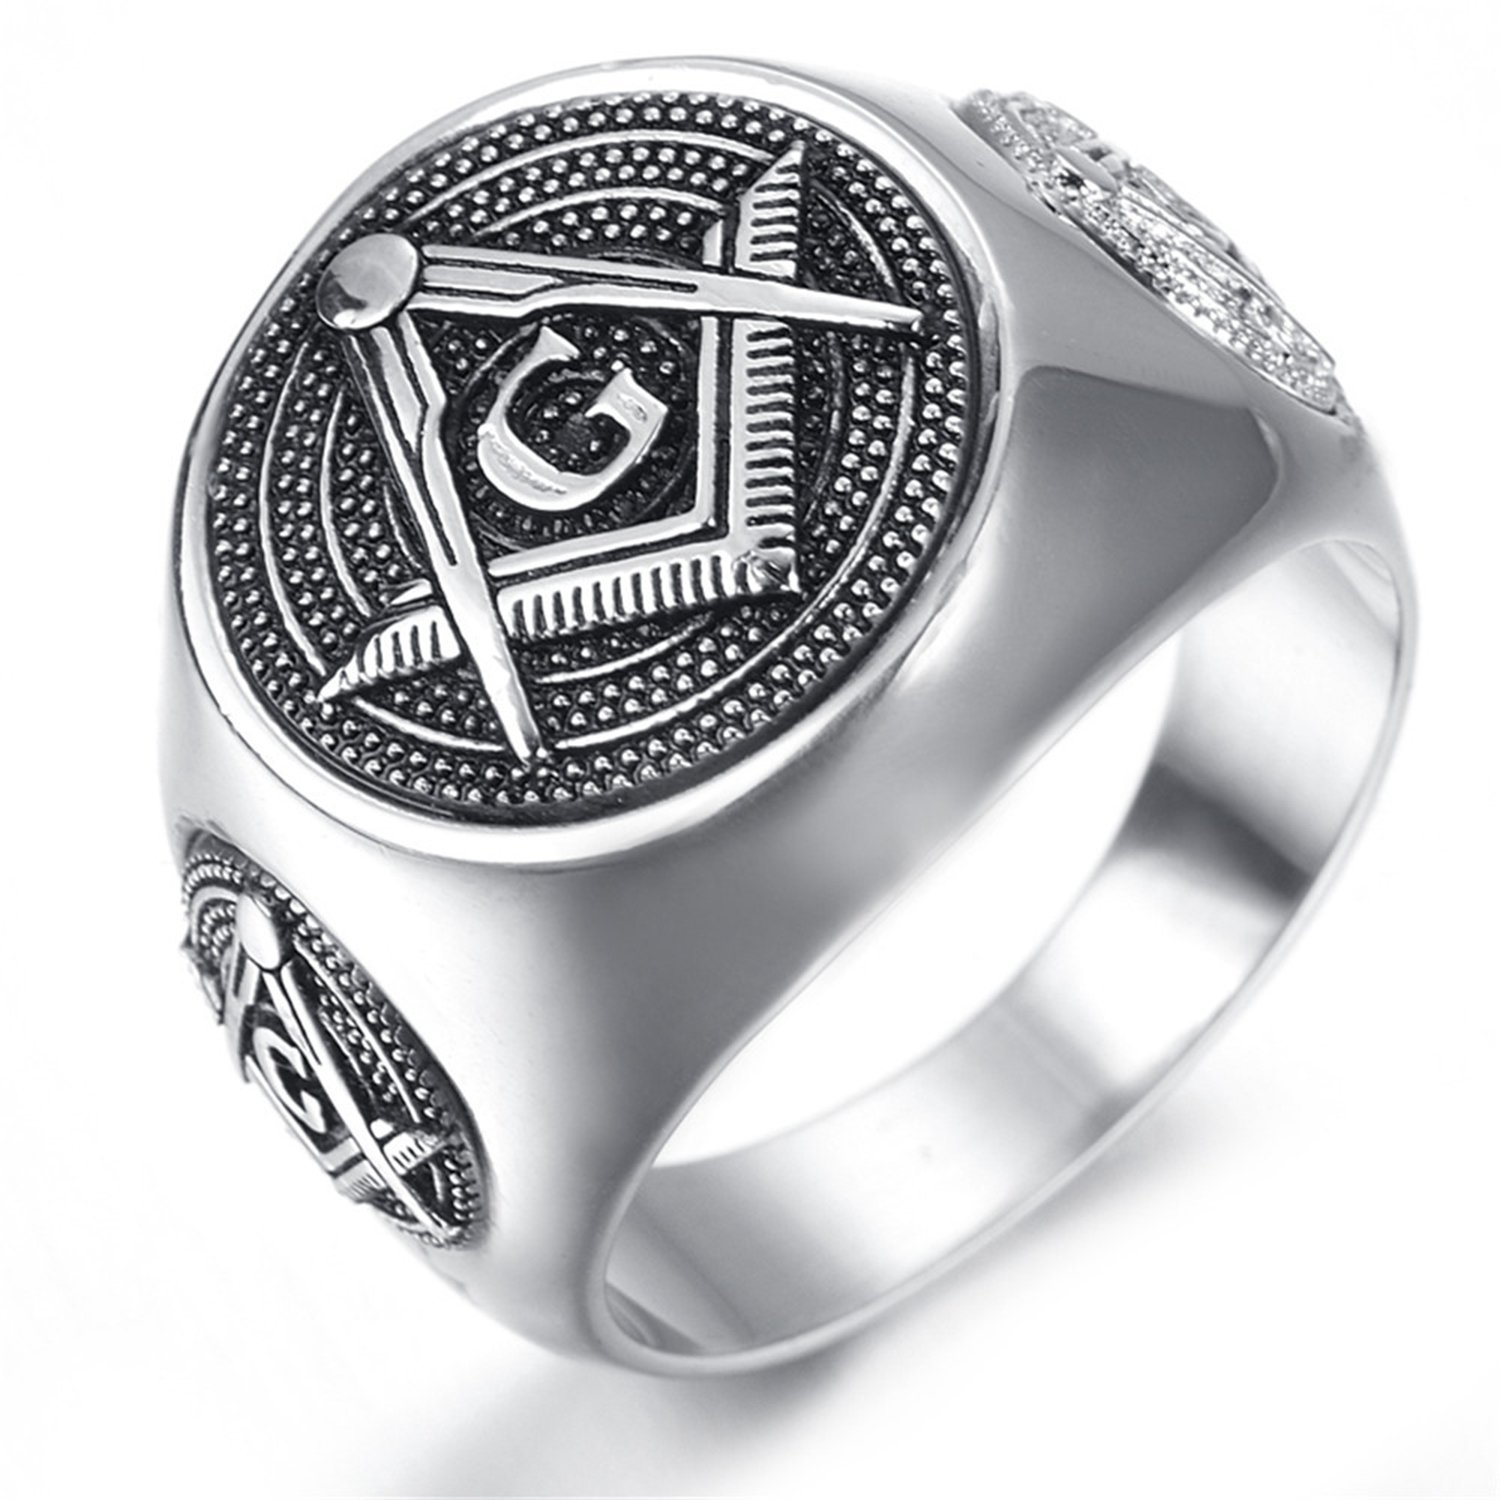 LILILEO Jewelry Stainless Steel Dense Bumps Masonic Dome AG Ring For Men's Rings by LILILEO